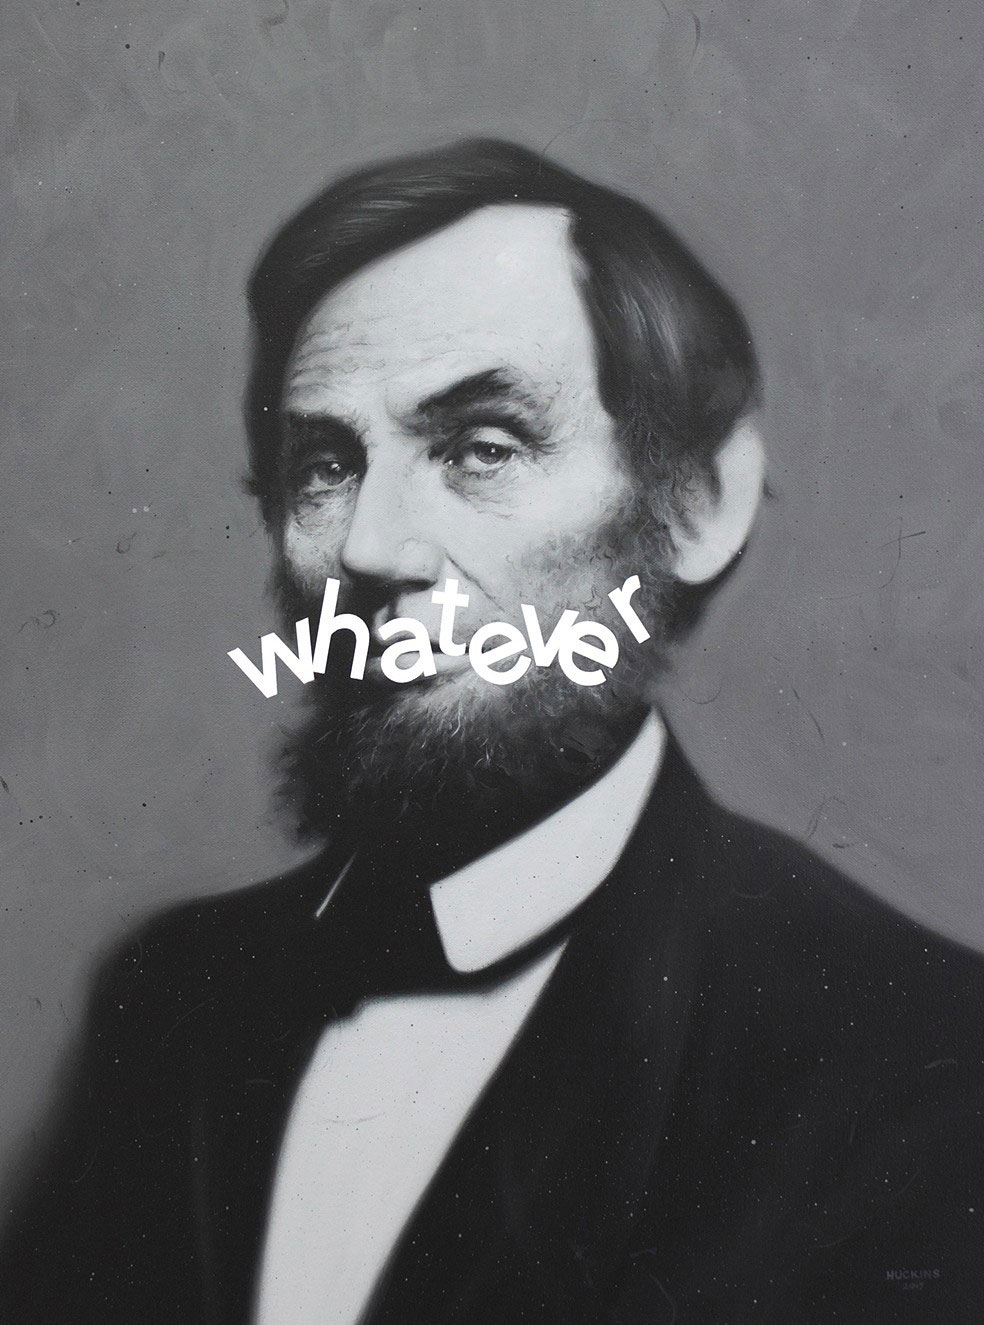 Shawn Huckins, Abraham Lincoln: Whatever, acrylic on canvas, 24 x 18 in (61 x 46 cm), 2015. Private collection.